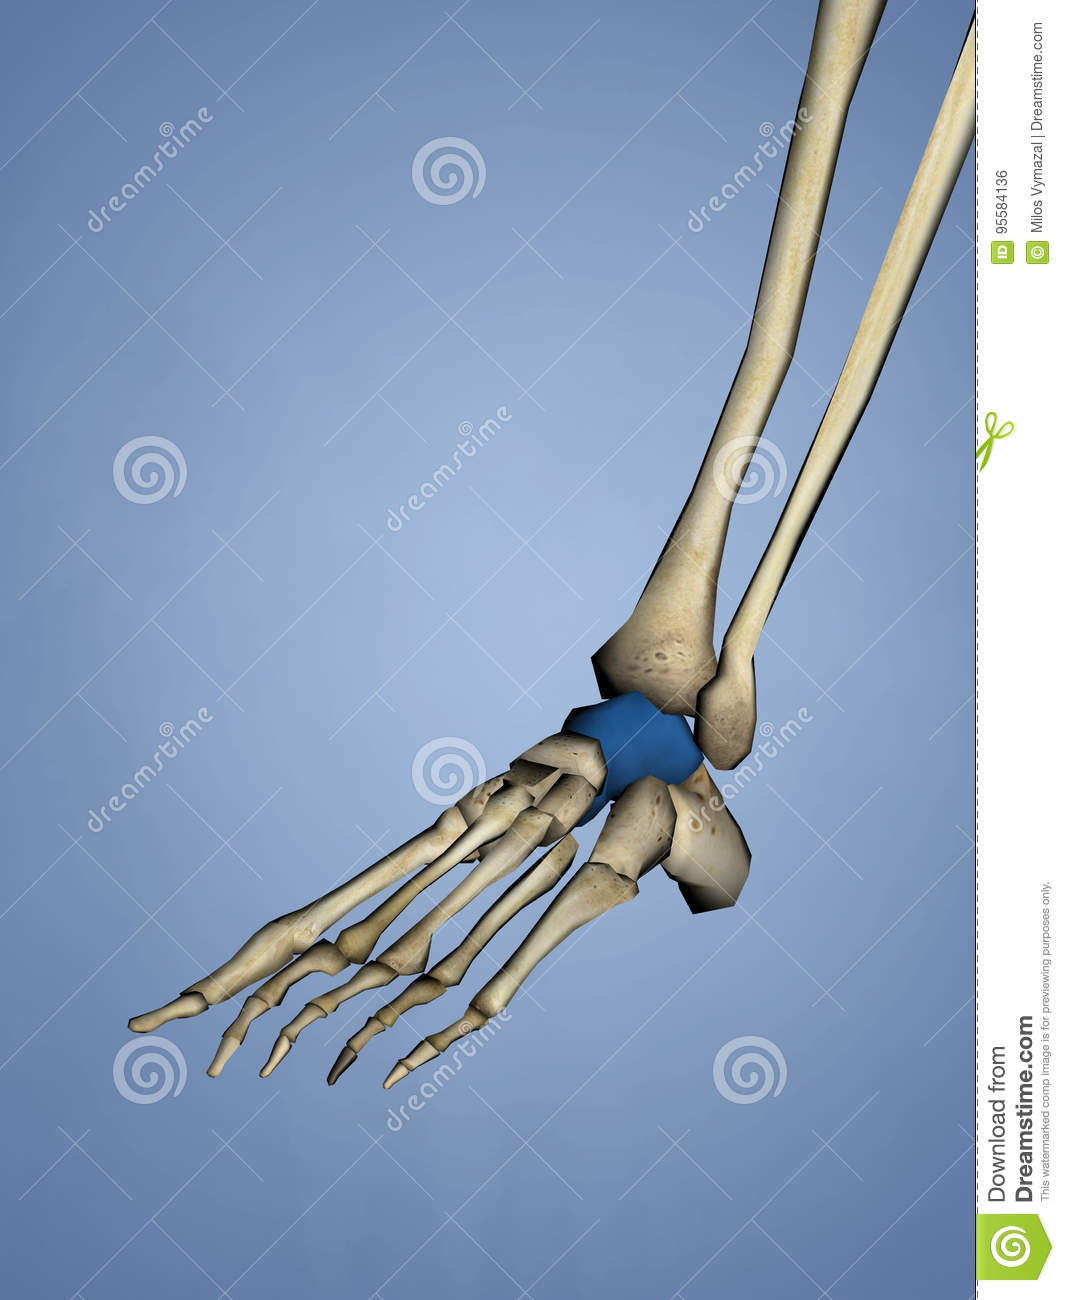 Talus Bone stock illustration. Illustration of anatomy - 95584136